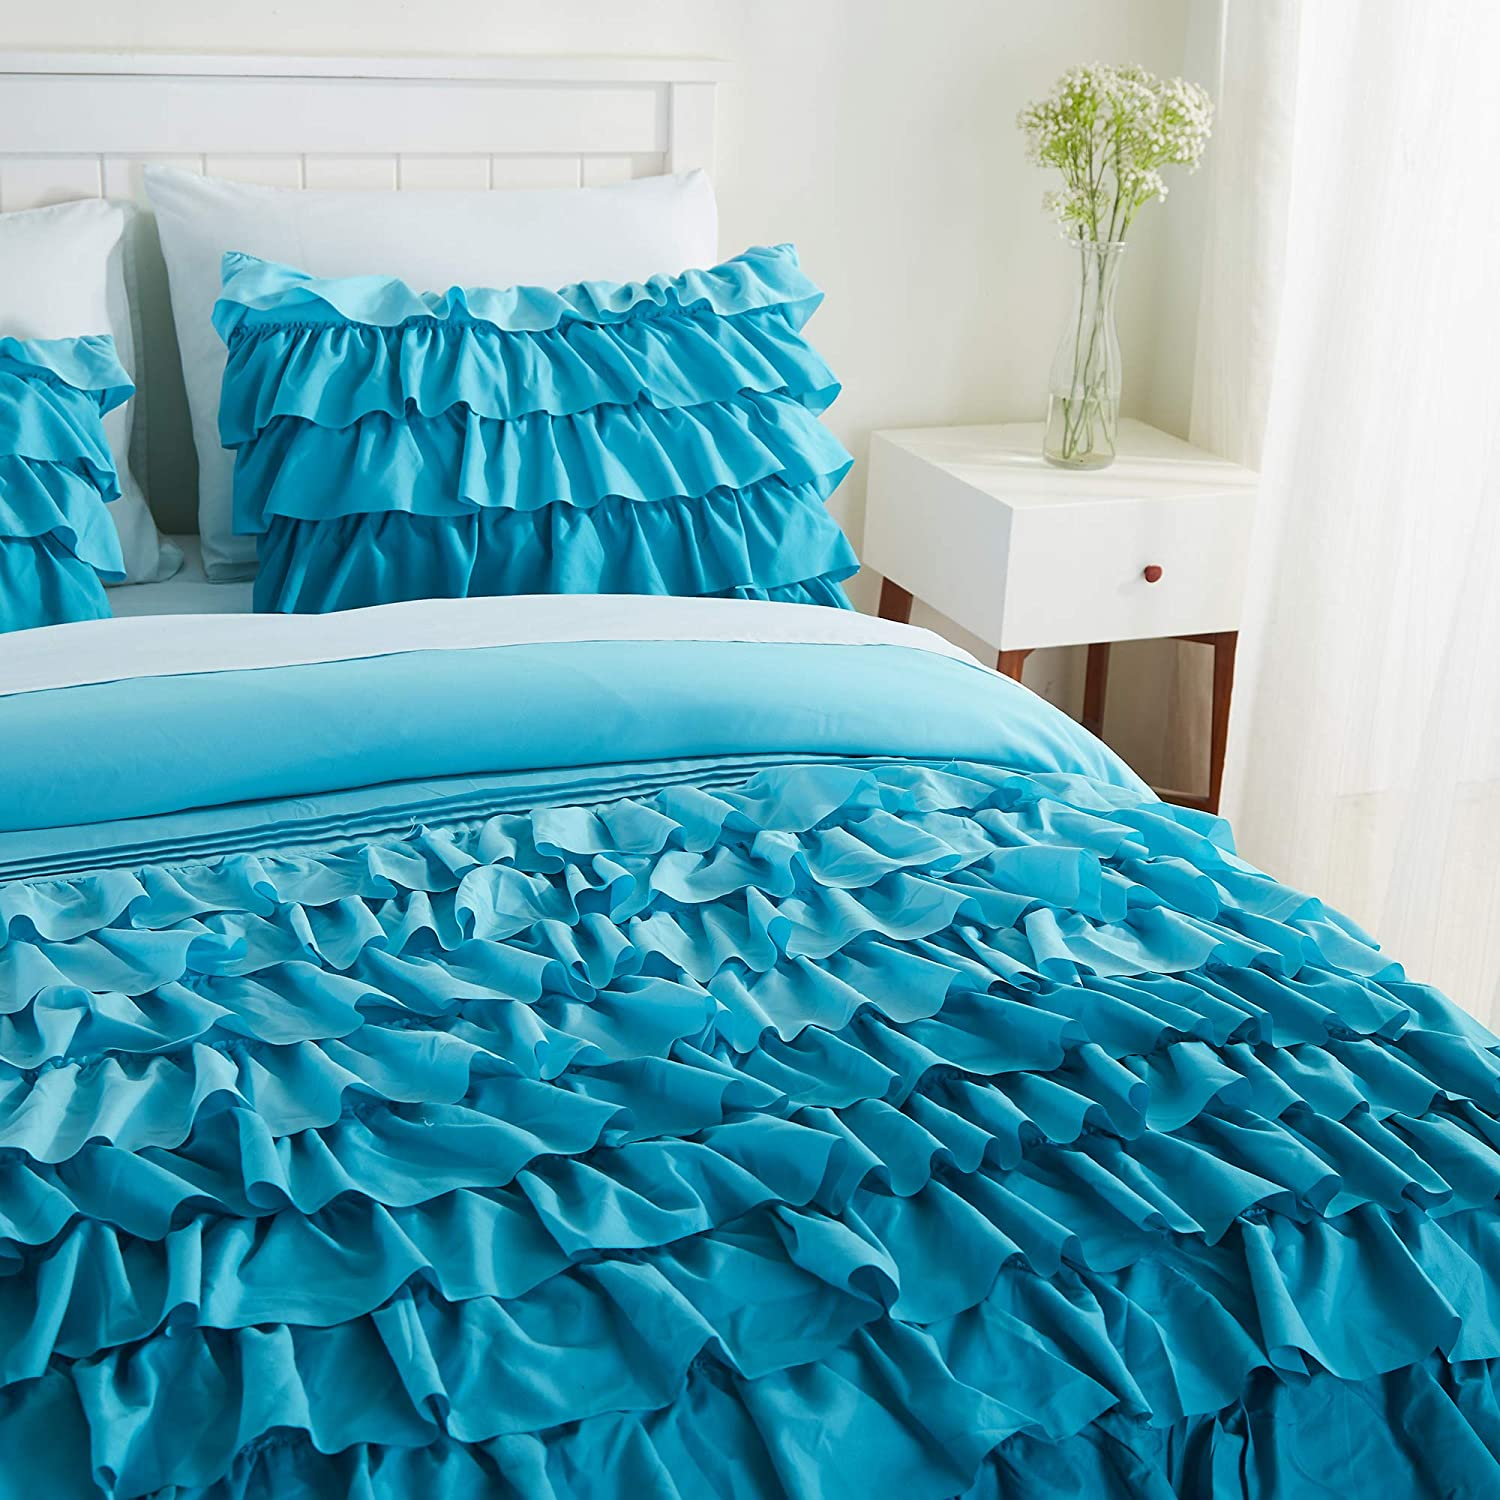 Bedding Sets Collections Twin Xl Teal Cassiel Home Gorgeous 3 Pcs Winter Waterfall Girls Set Flowing Ruffle Comforter For Teen Girl Boy Toys Games